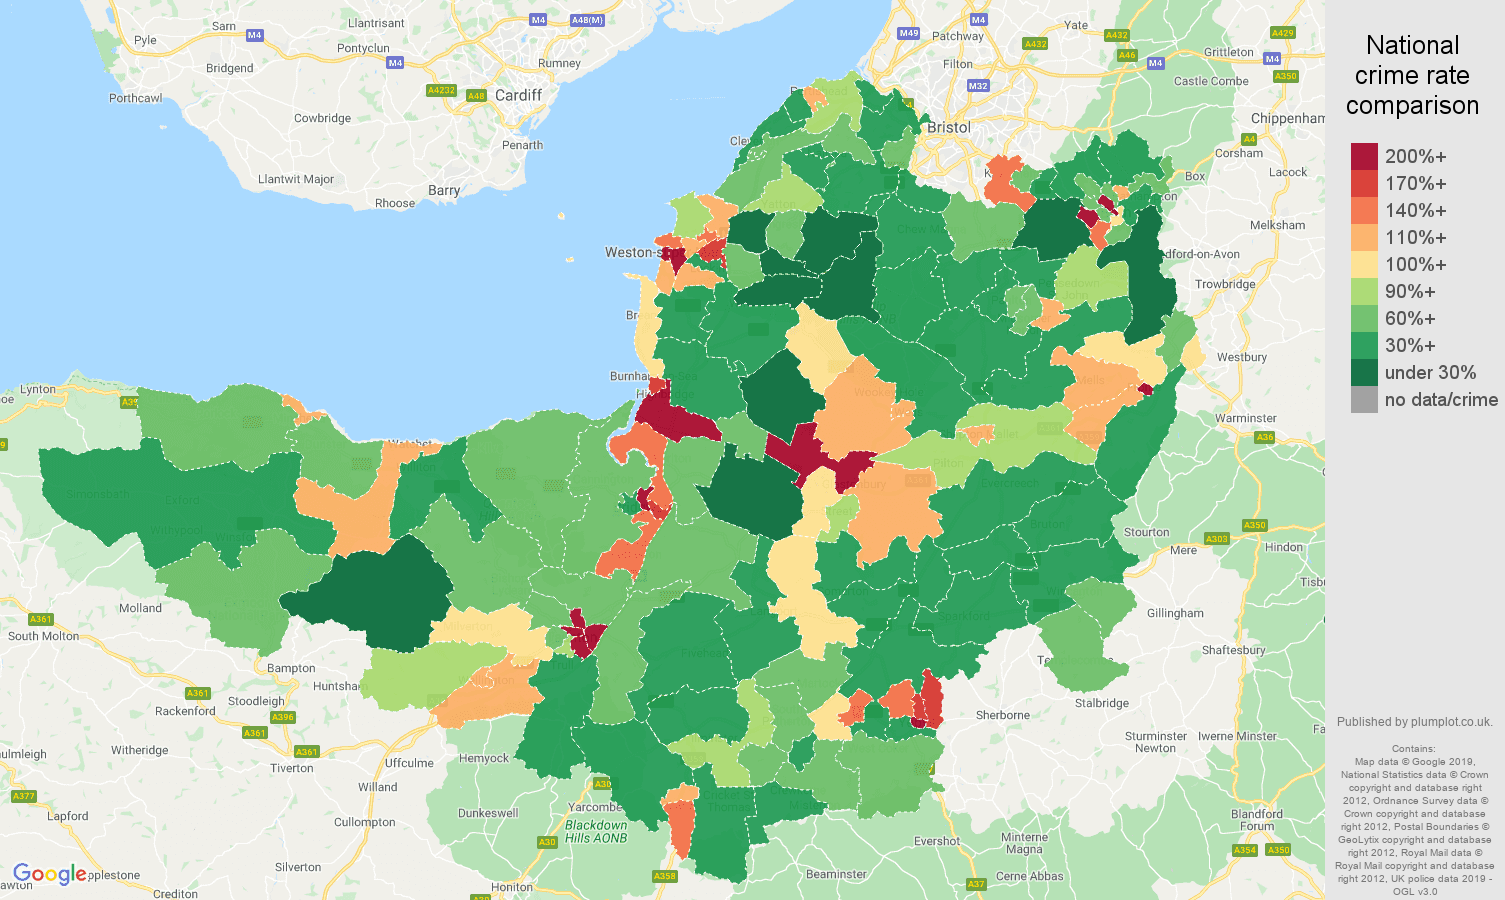 Somerset public order crime rate comparison map